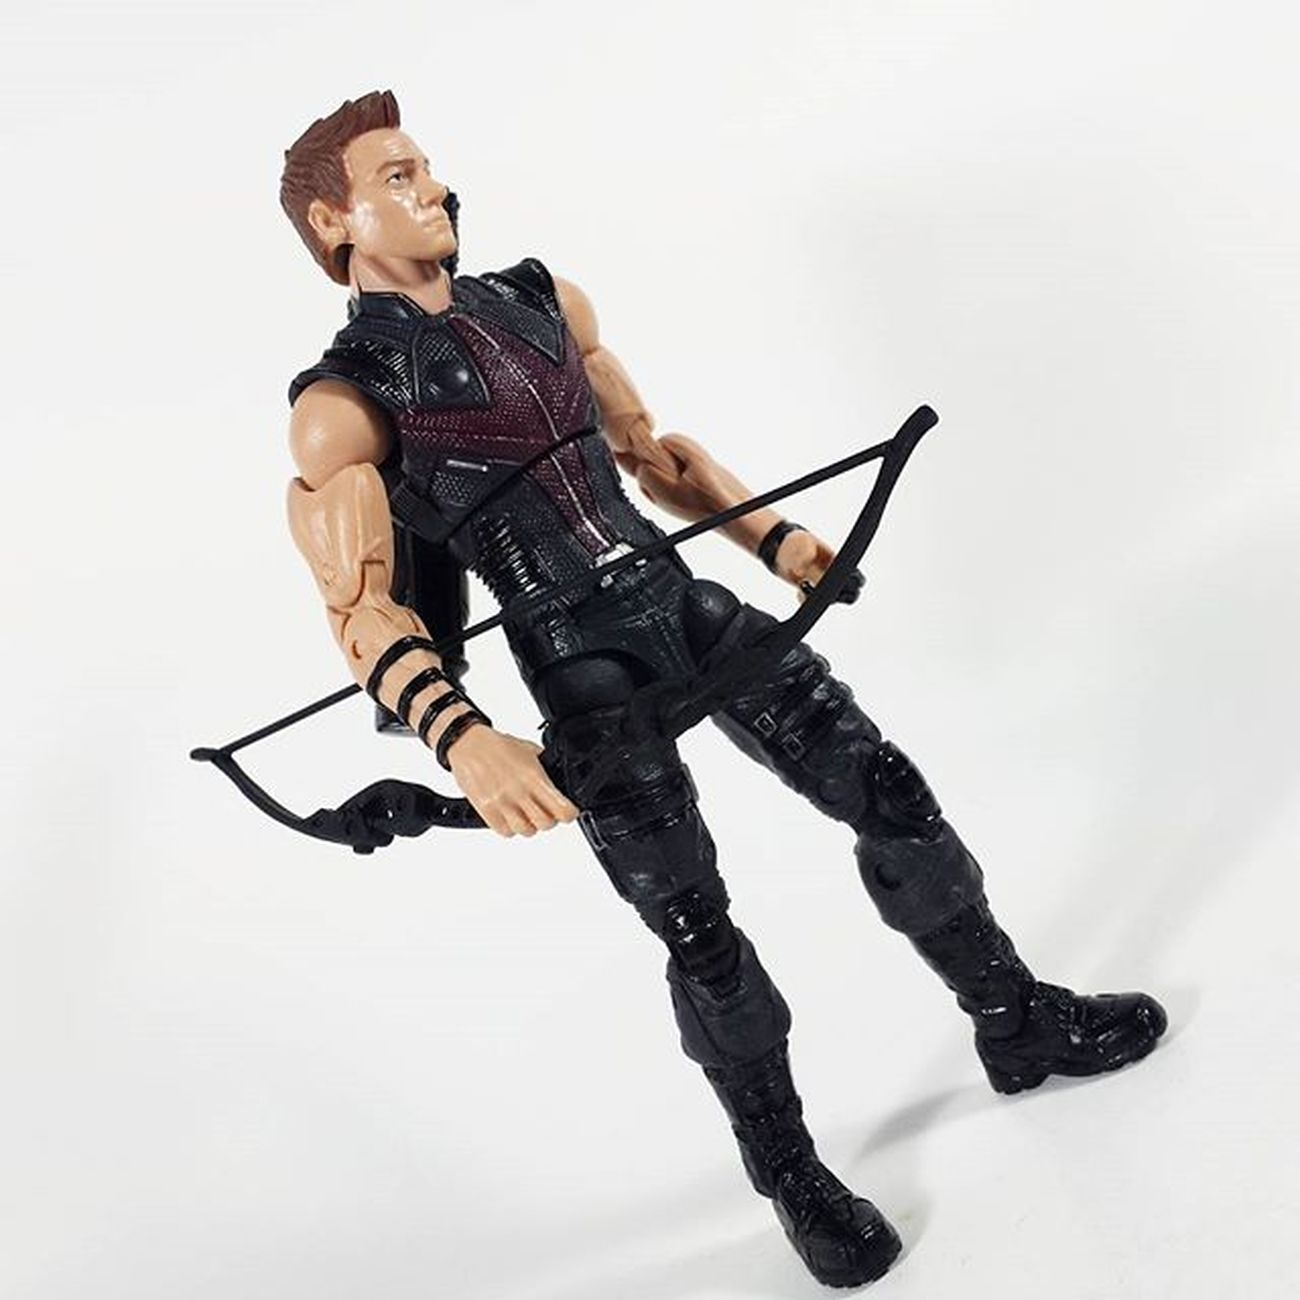 Hawkeye Cliffbarton Hawkeye Avengers AgeOfUltron Marvel Marvellegends Marvelcomics Toys Toyphotography Toypizza Toysarehellasick Toycollector Toycommunity Toycollection Toyslagram Toyunion